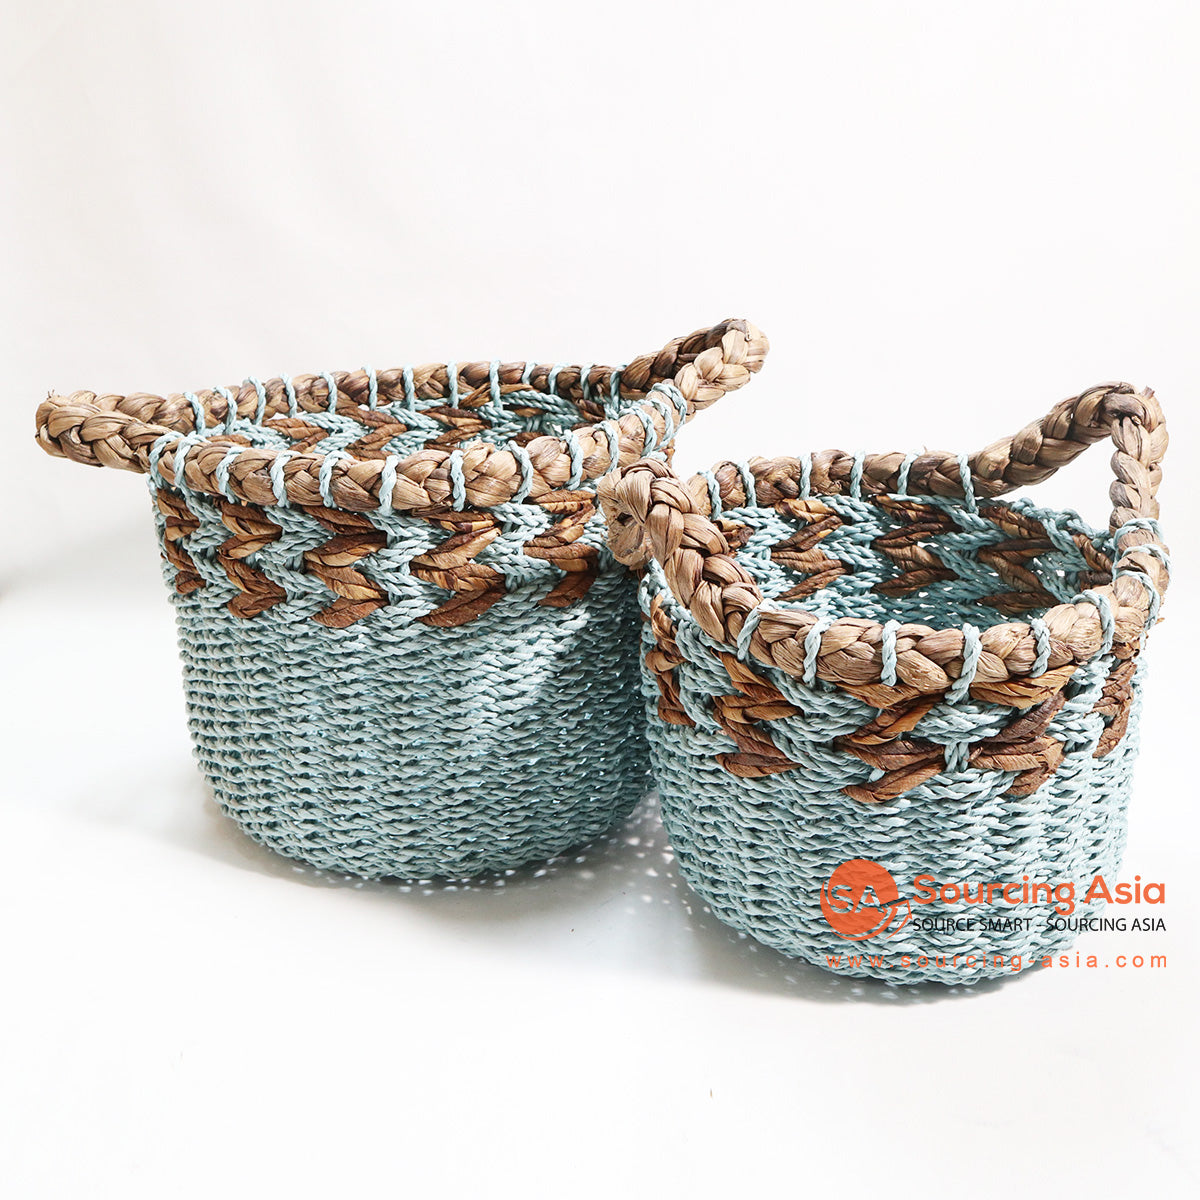 HBSC115-1 SET OF 2 BLUE SEA GRASS AND WATER HYACINTH BASKETS